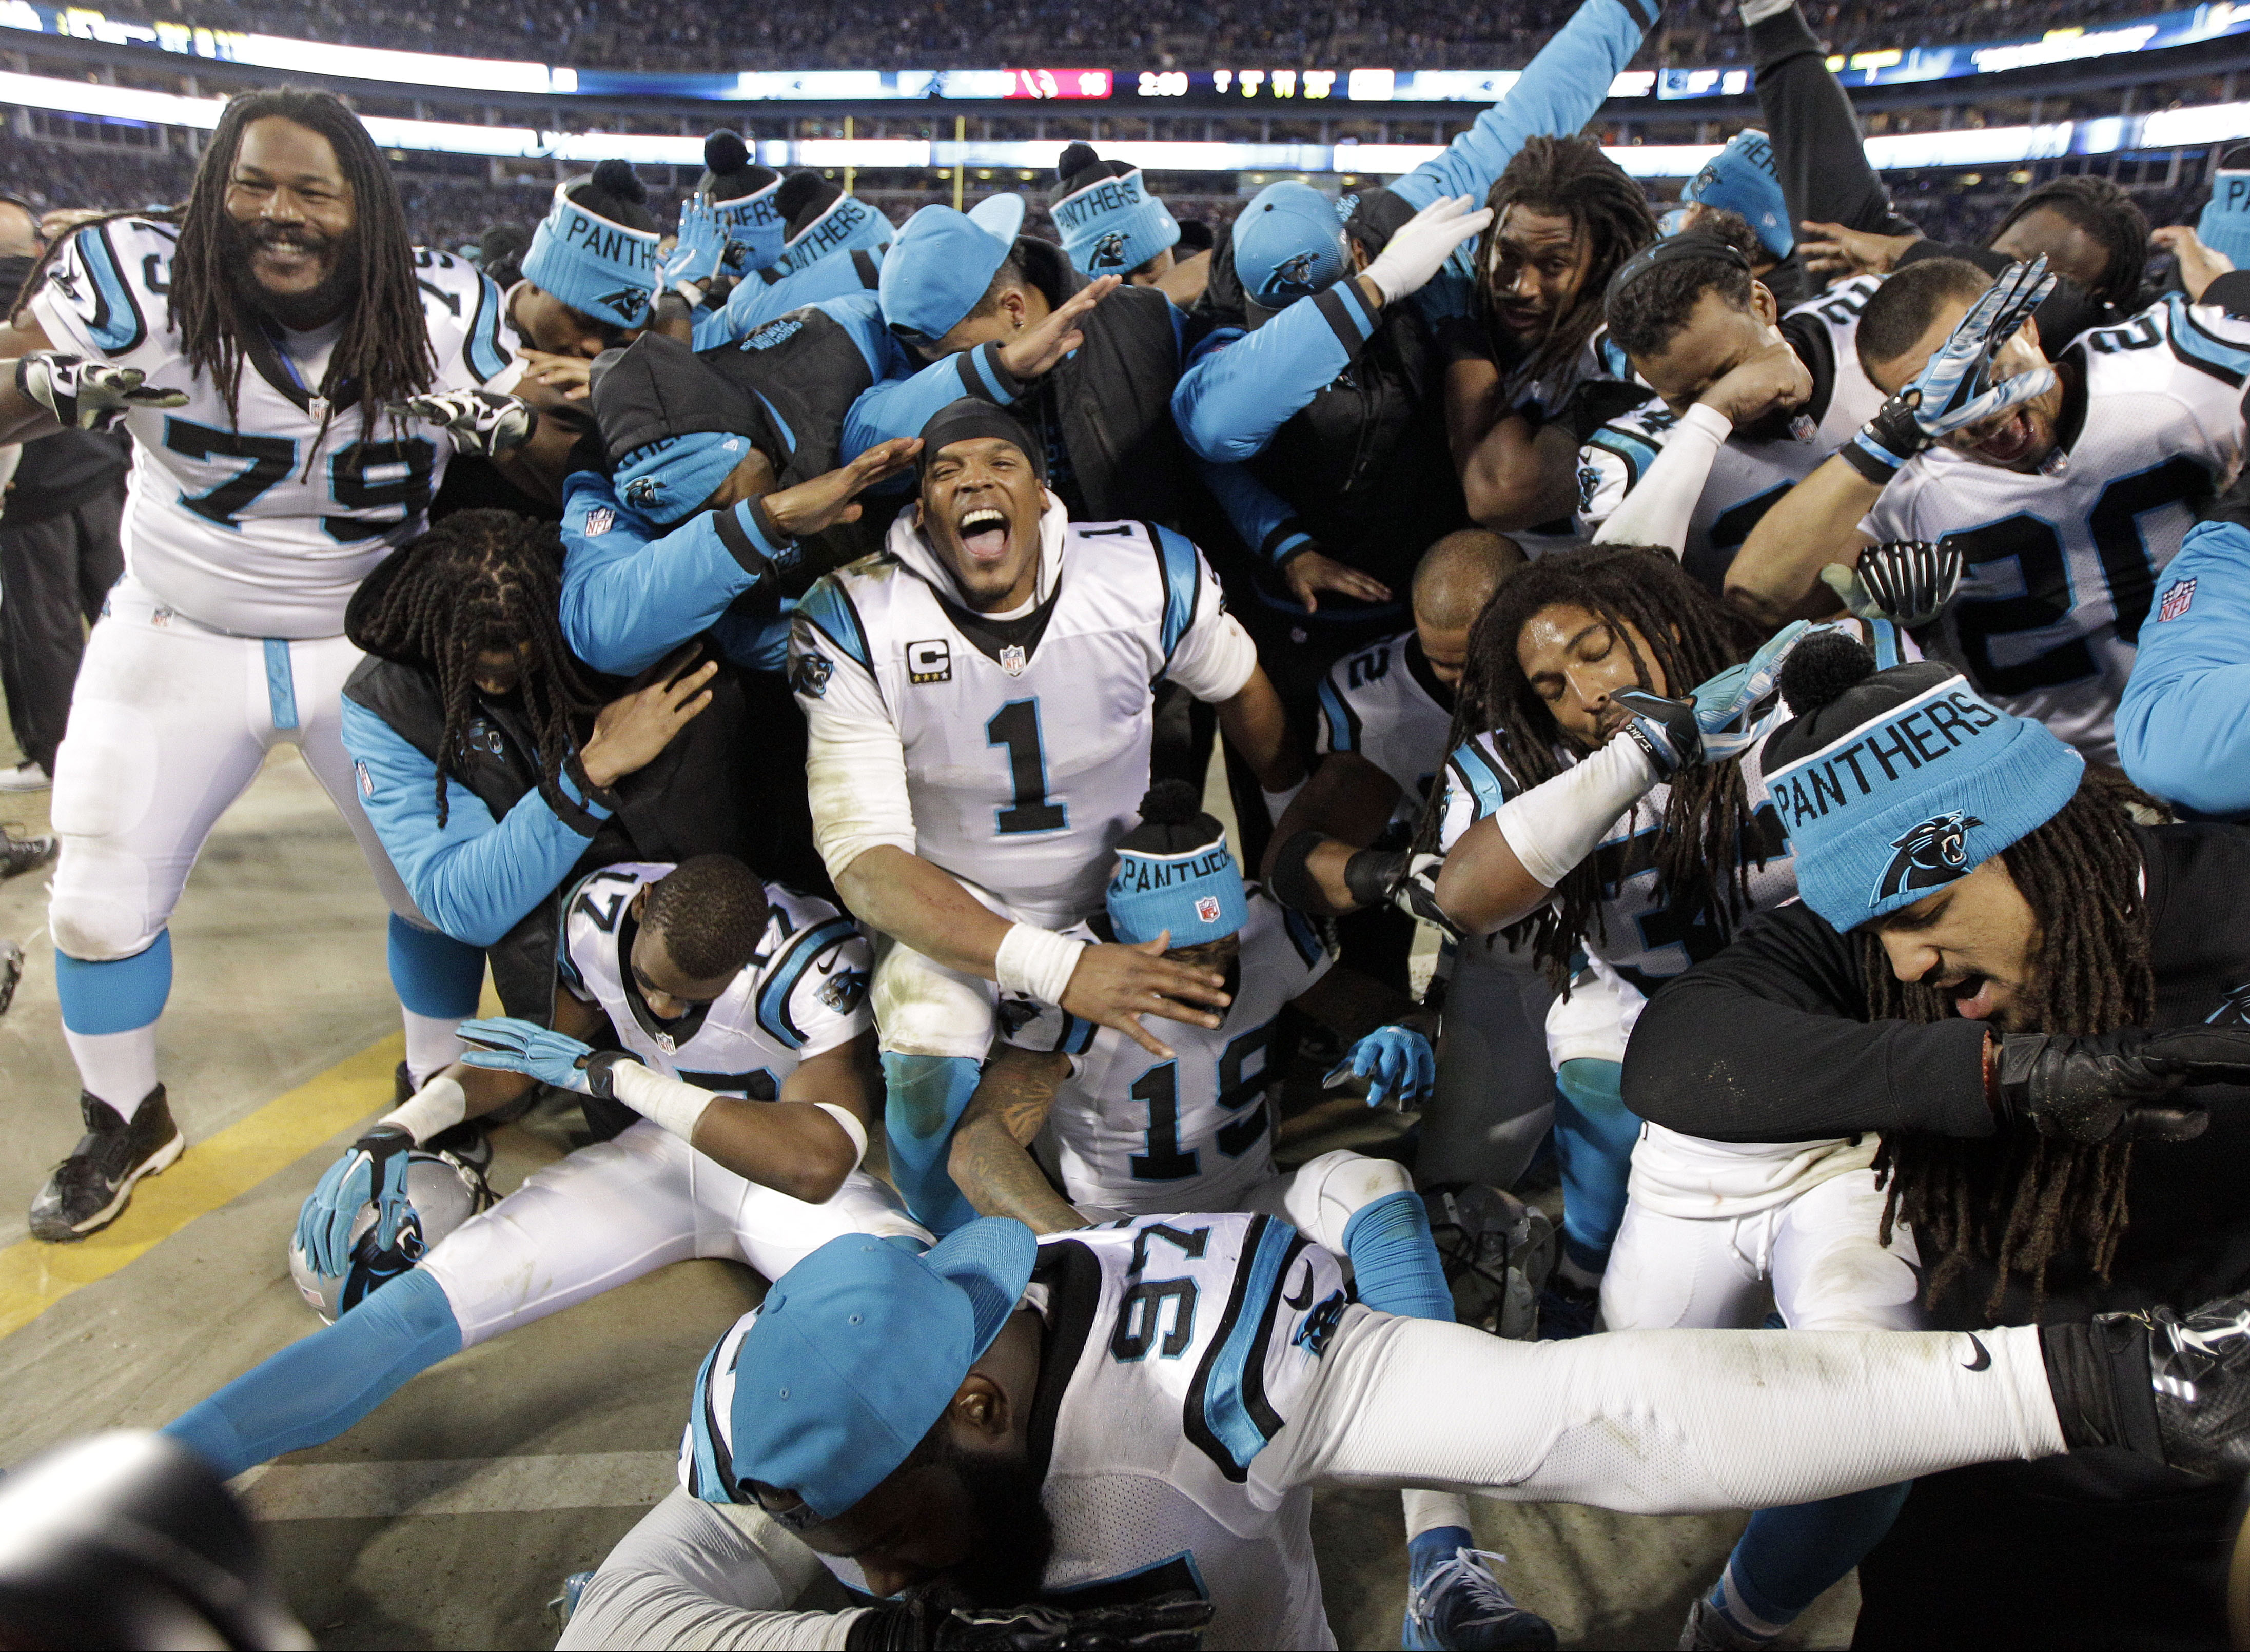 089eb55f It's Panthers-Broncos in Super Bowl 50 - CBS News